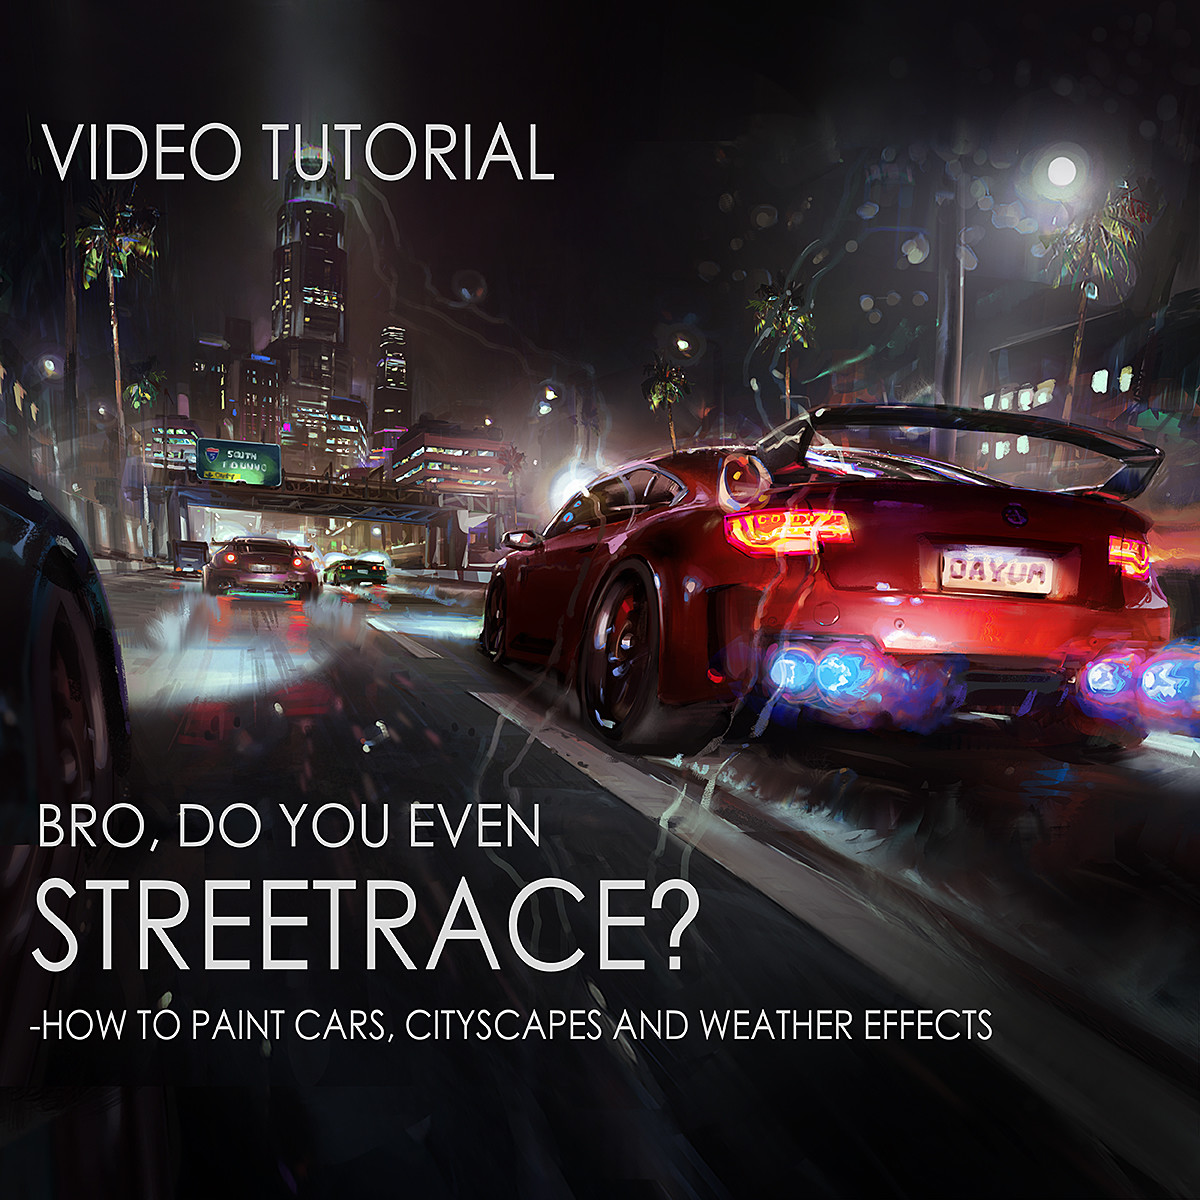 bro, do you even STREETRACE?